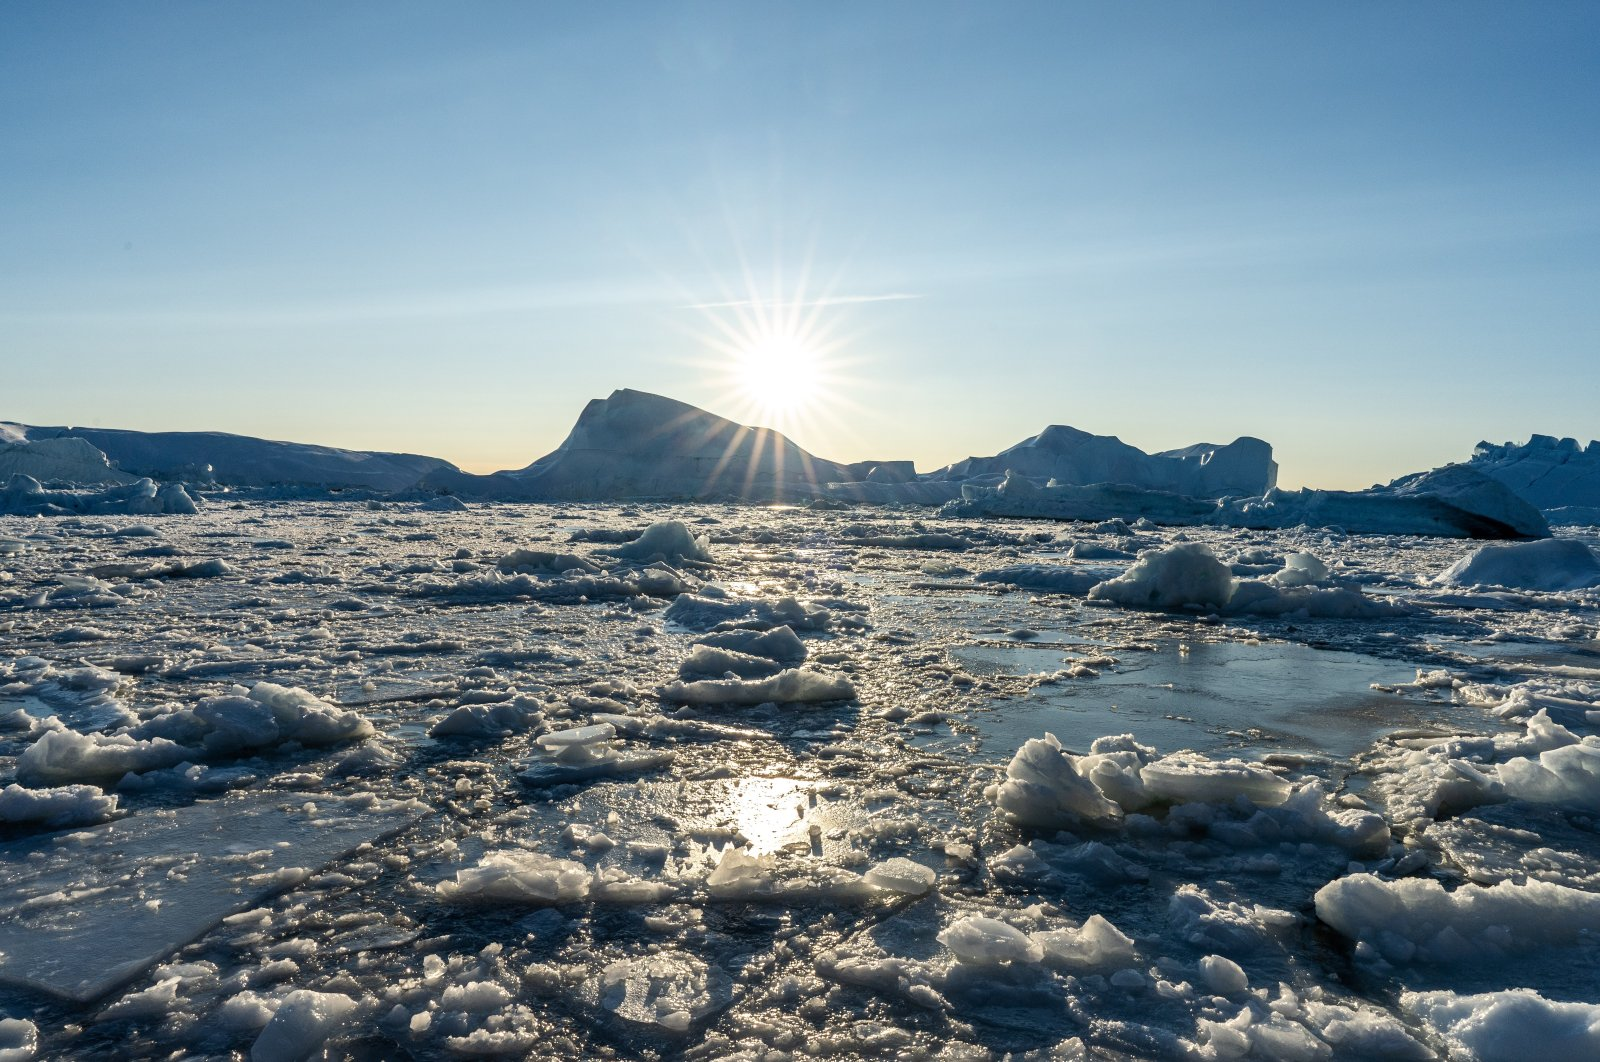 Melted icebergs near Ilulissat, Greenland, Oct. 7, 2020. (Photo by Getty Images)